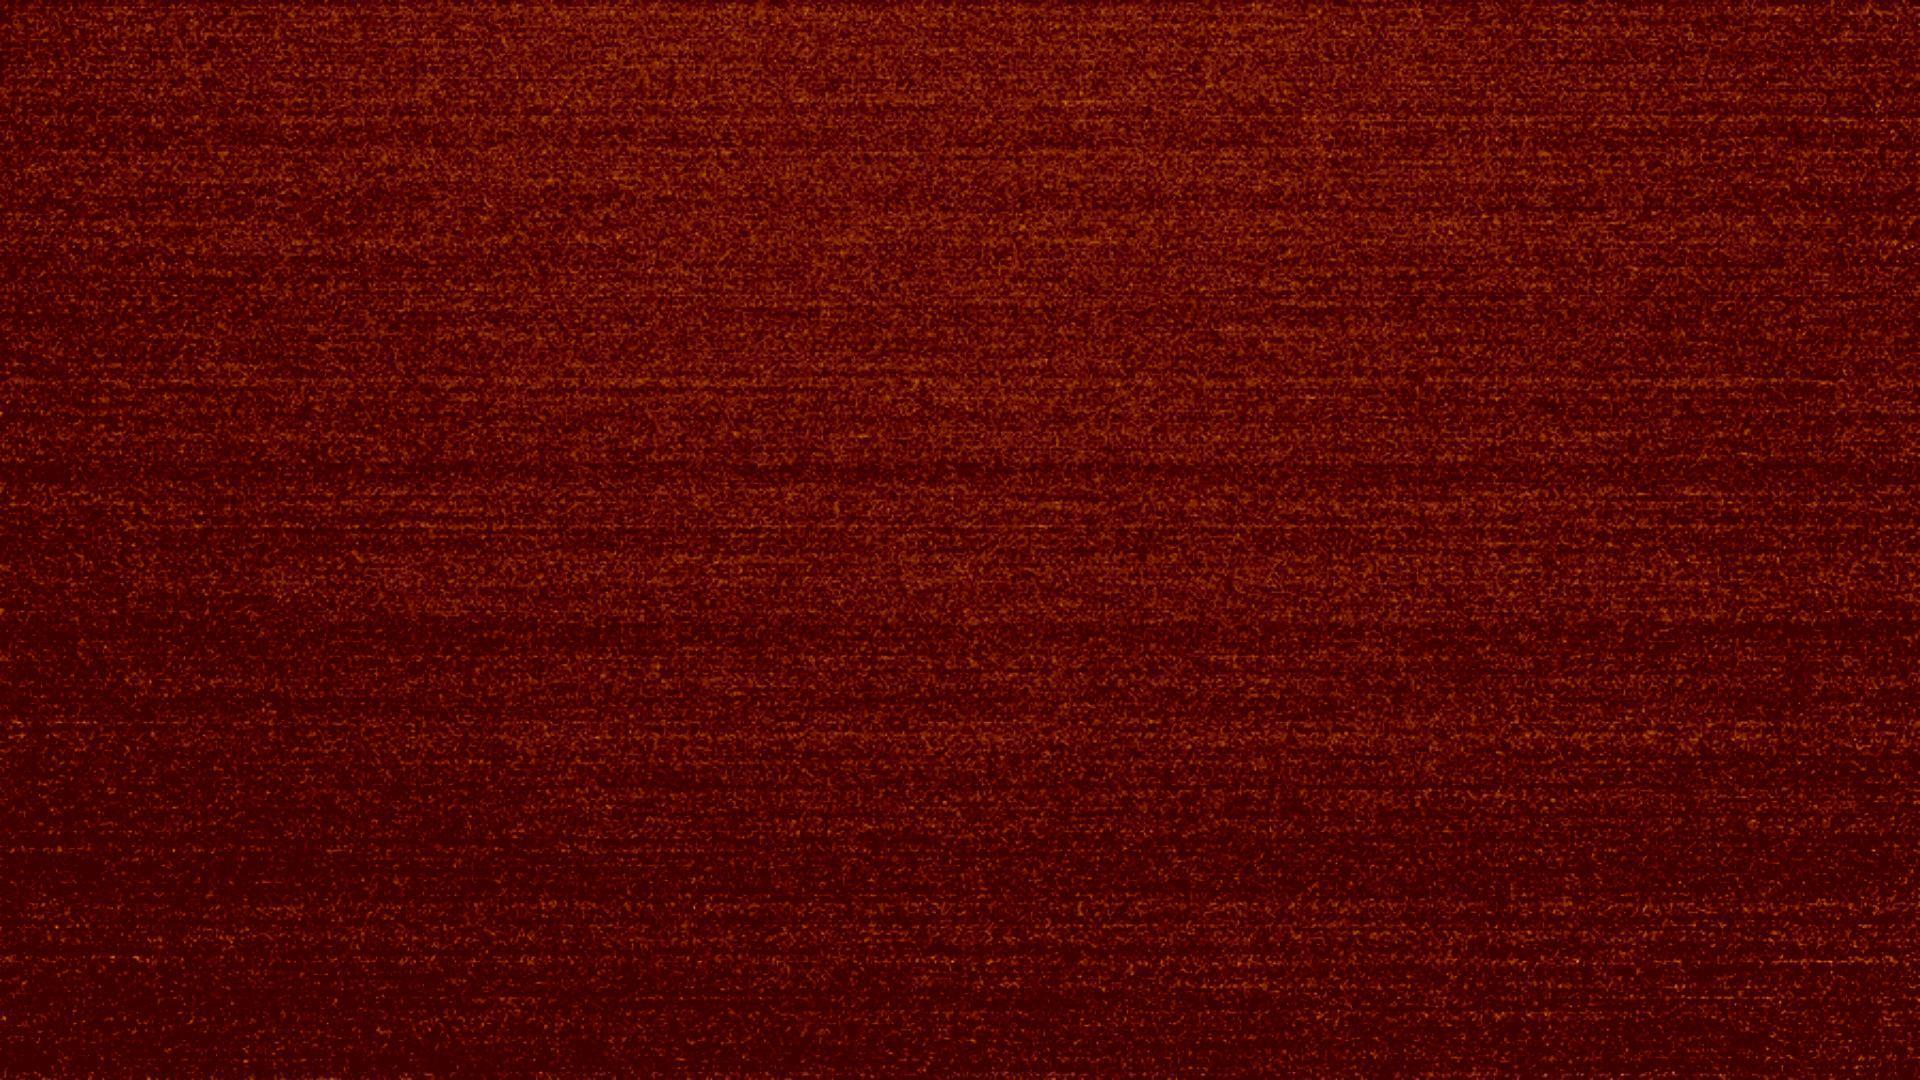 Deep Red Backgrounds